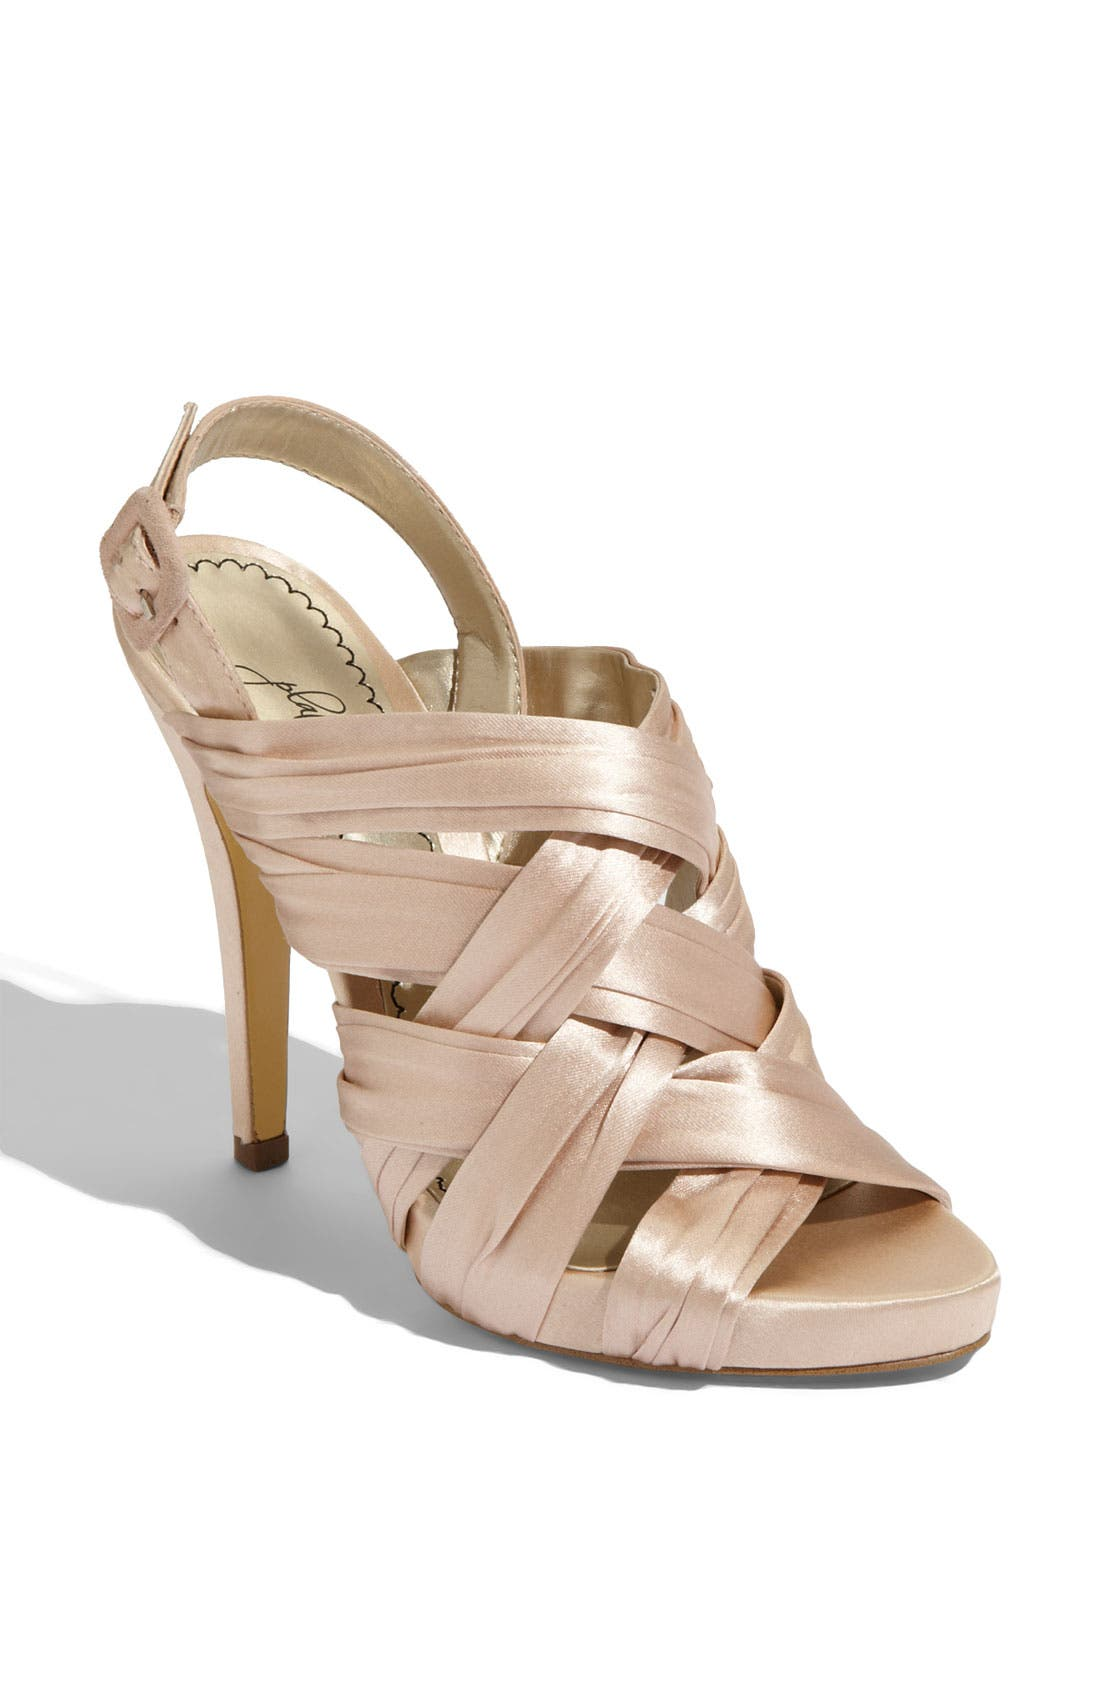 Alternate Image 1 Selected - BP. 'Kenna' Sandal